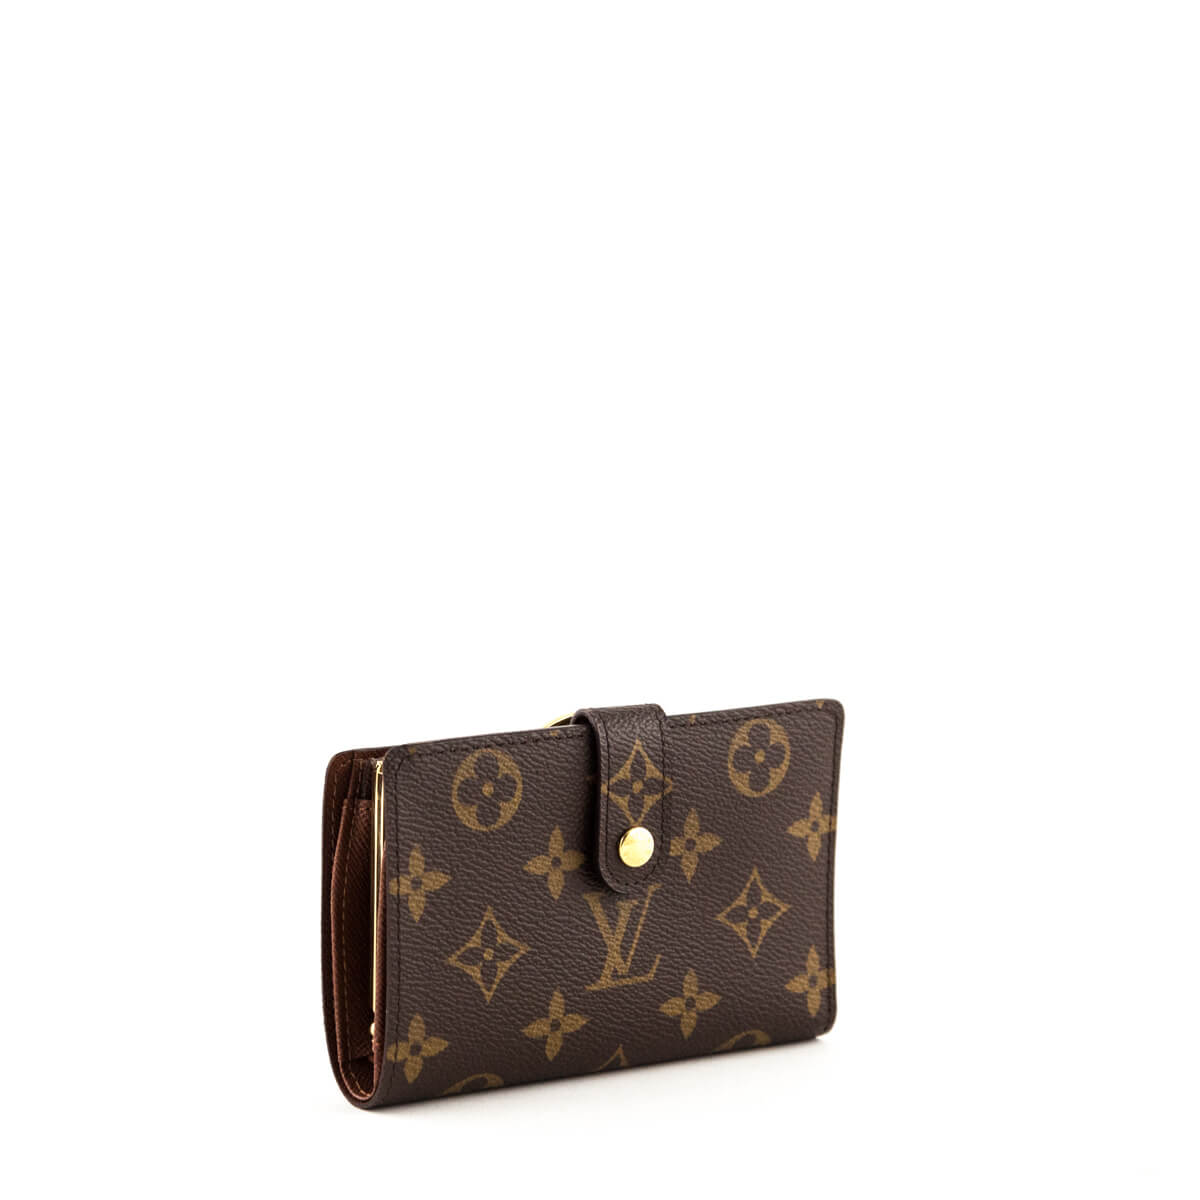 ... Louis Vuitton Monogram French Purse Wallet - LOVE that BAG - Preowned  Authentic Designer Handbags ... d36cb2ee19c